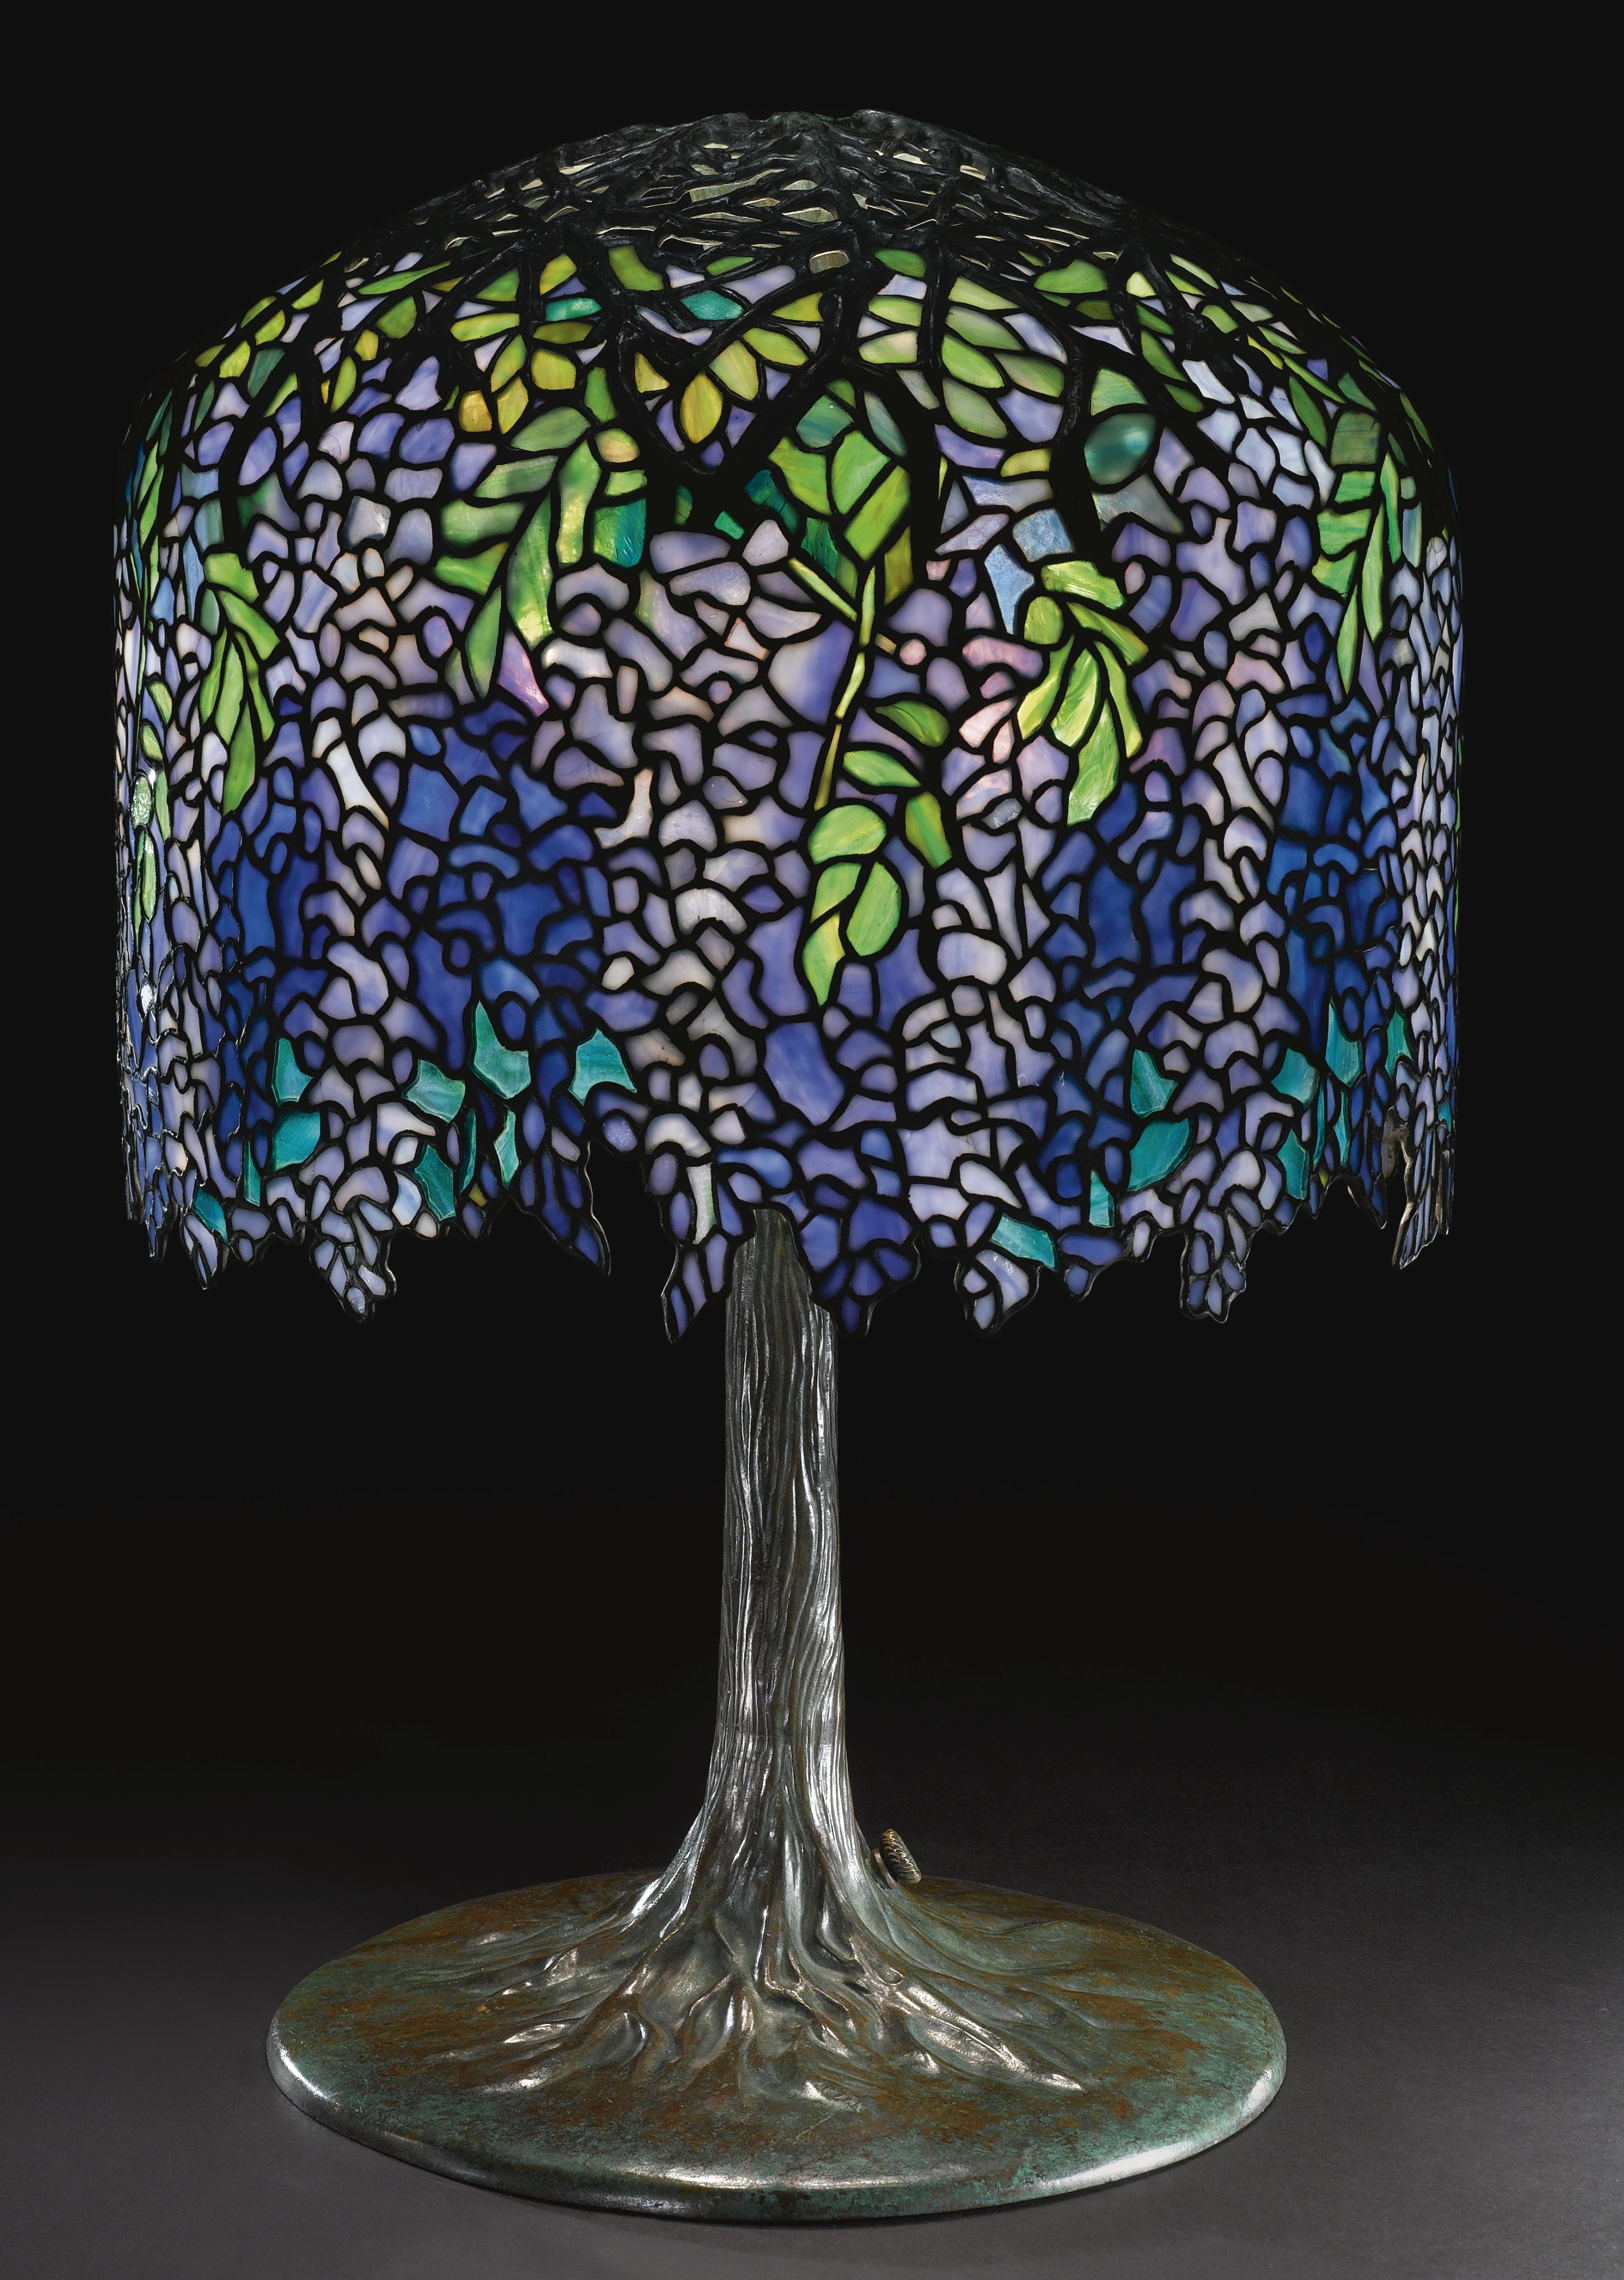 Tiffany Studios A Superb Wisteria Table Lamp Sotheby S Purple